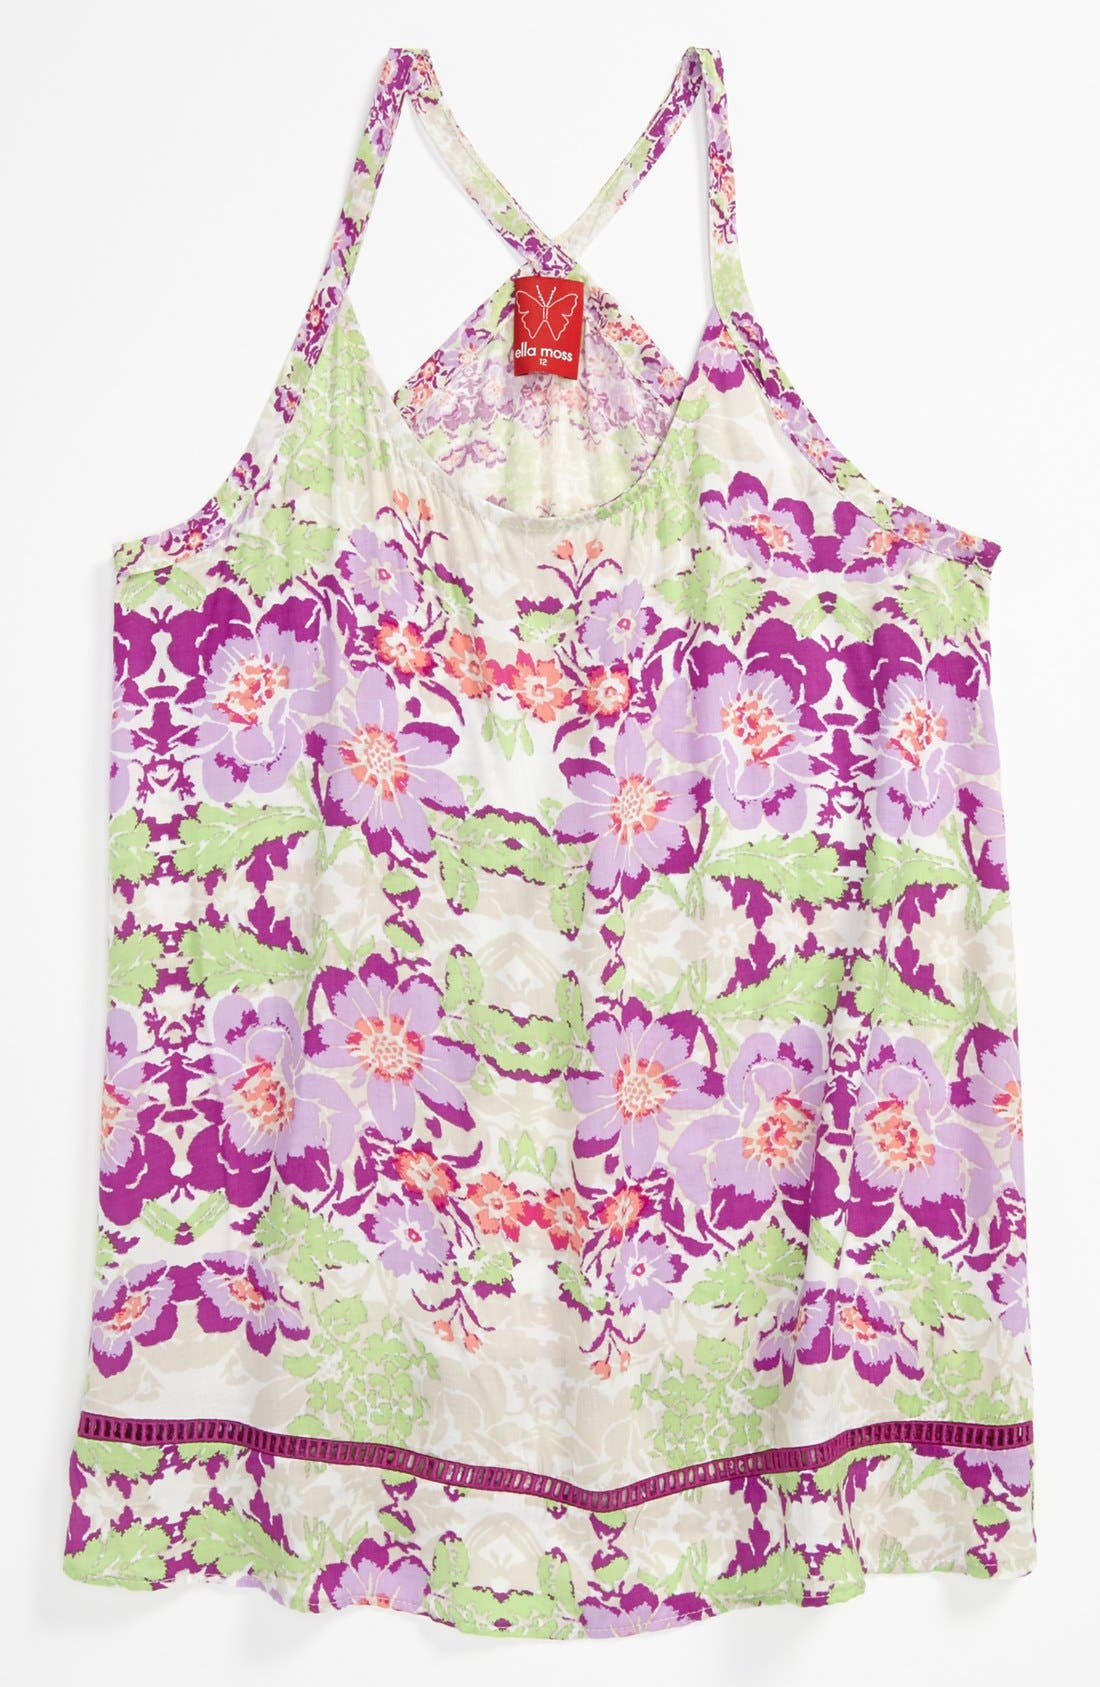 Alternate Image 1 Selected - Ella Moss 'Floral Lei' Tank Top (Big Girls)